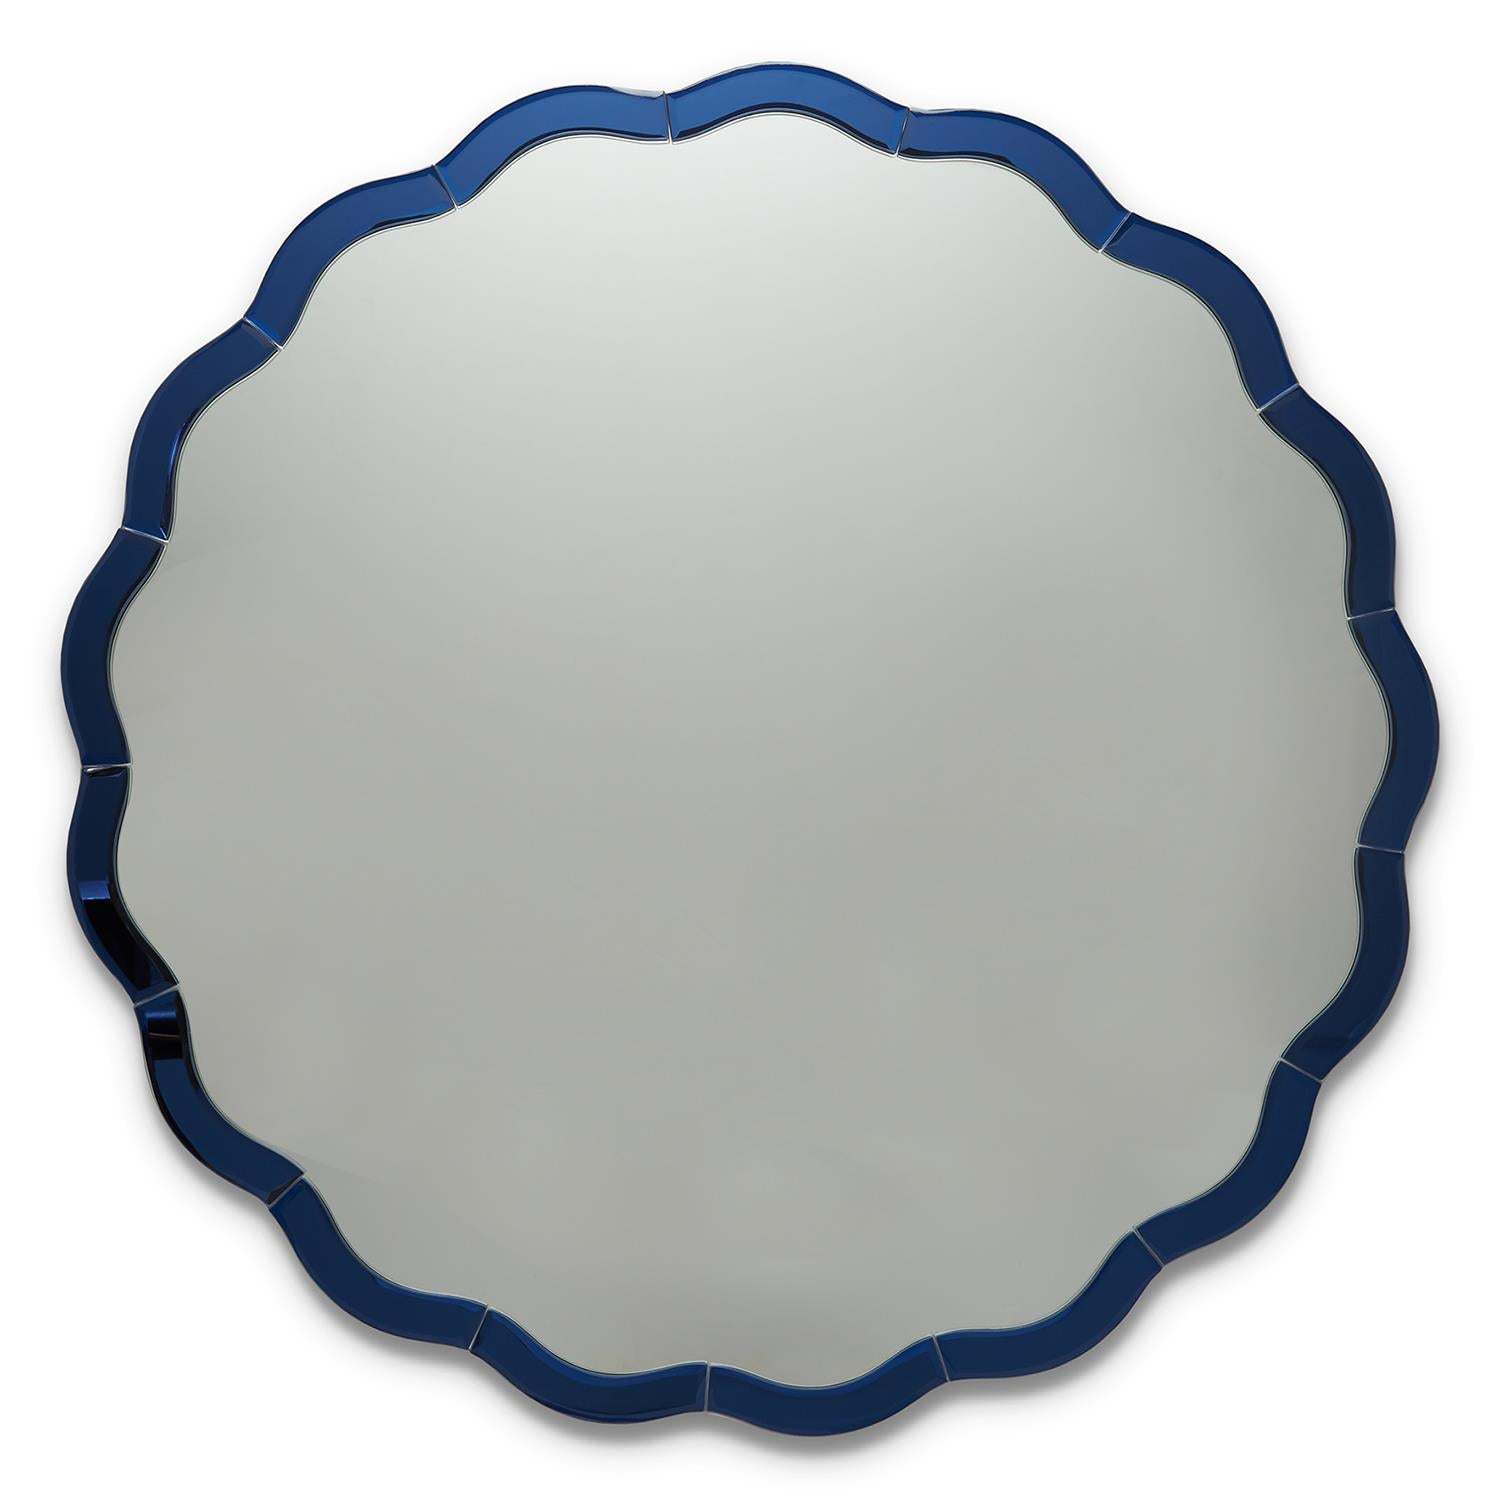 Furbish Studio - Sasha Round Scalloped Mirror in Blue